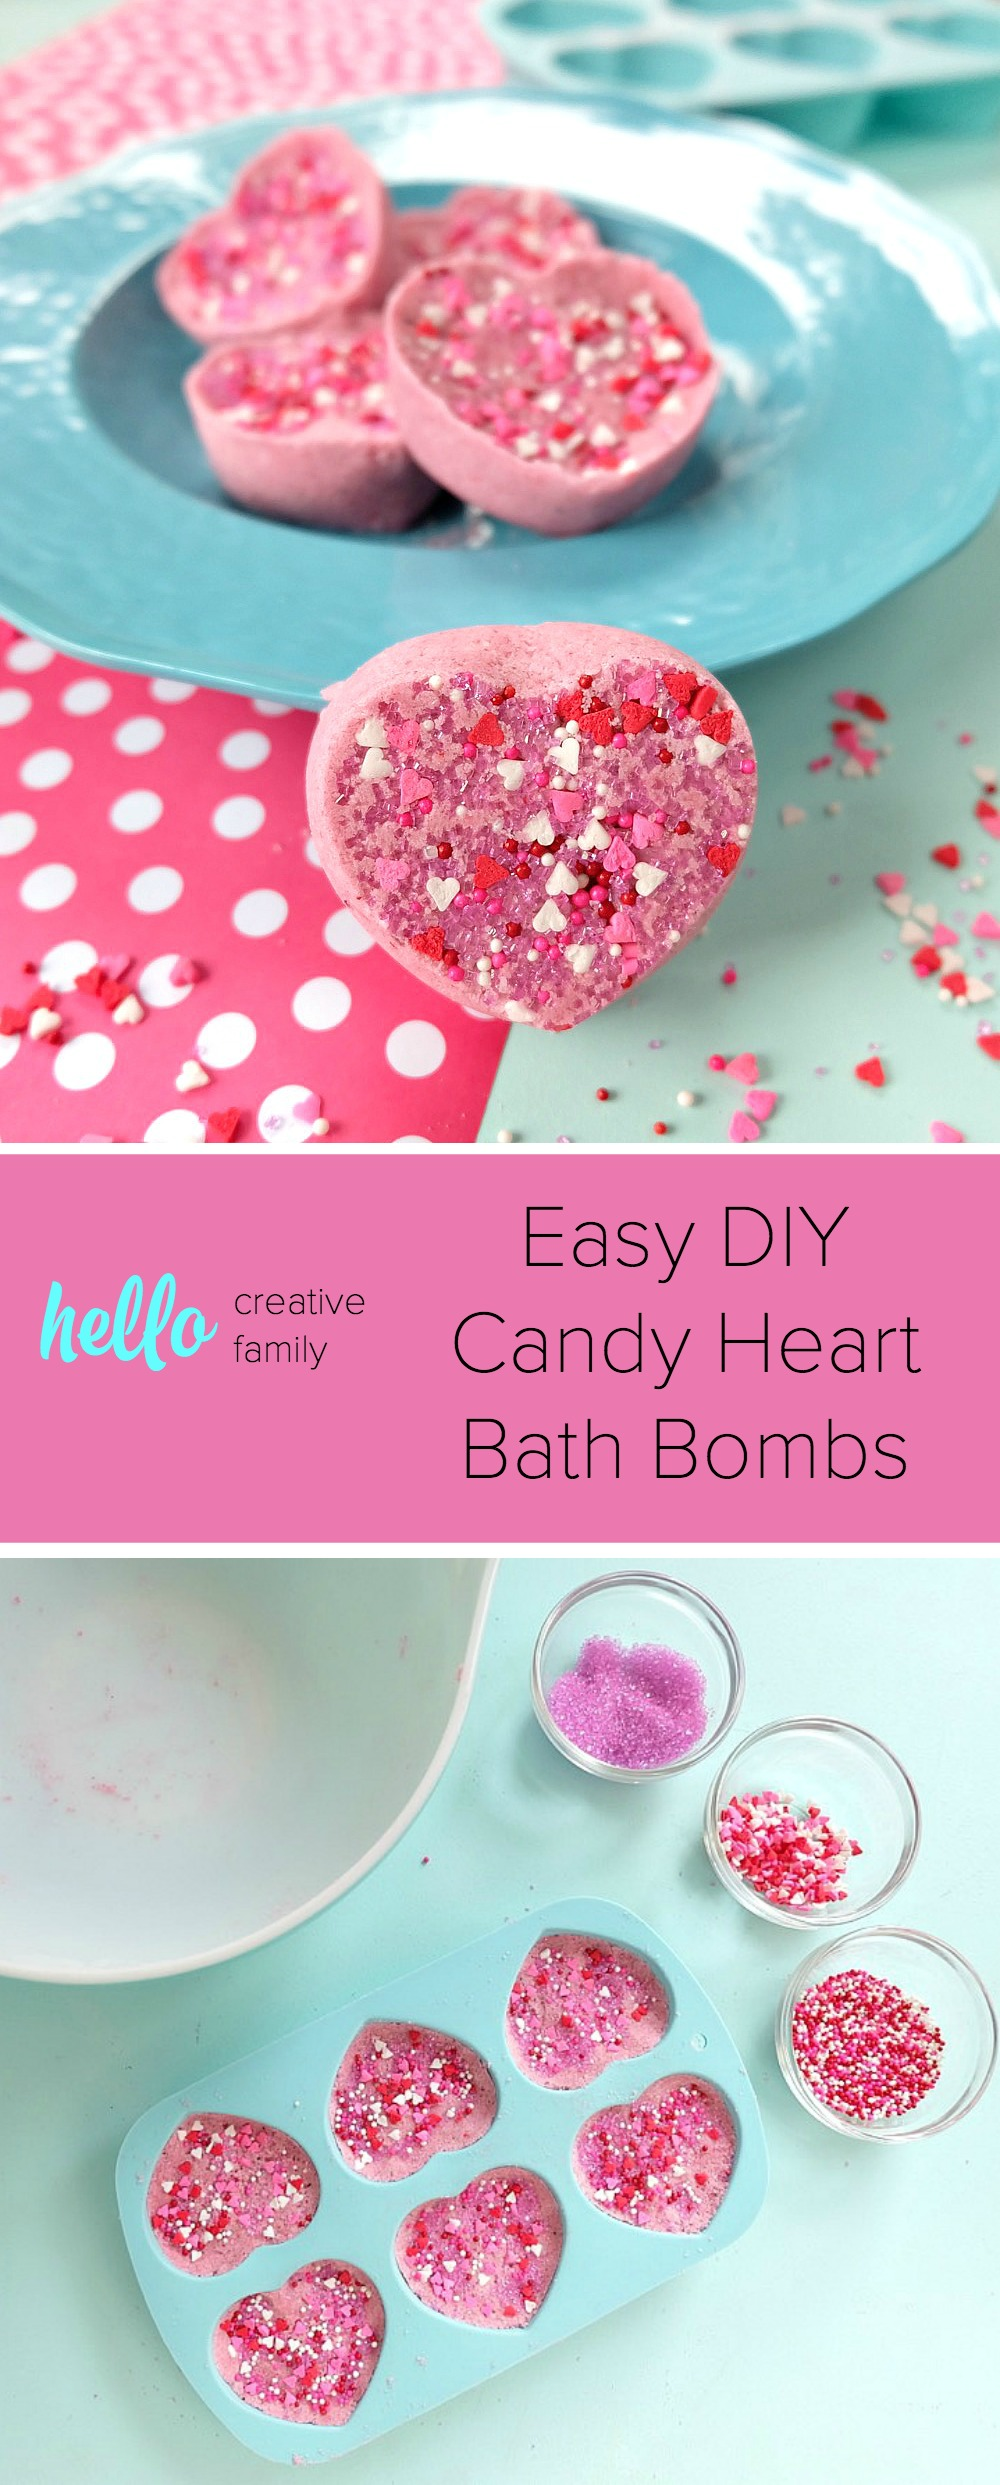 These Easy DIY Candy Heart Bath Bombs Are Scented Like Cotton And Just About